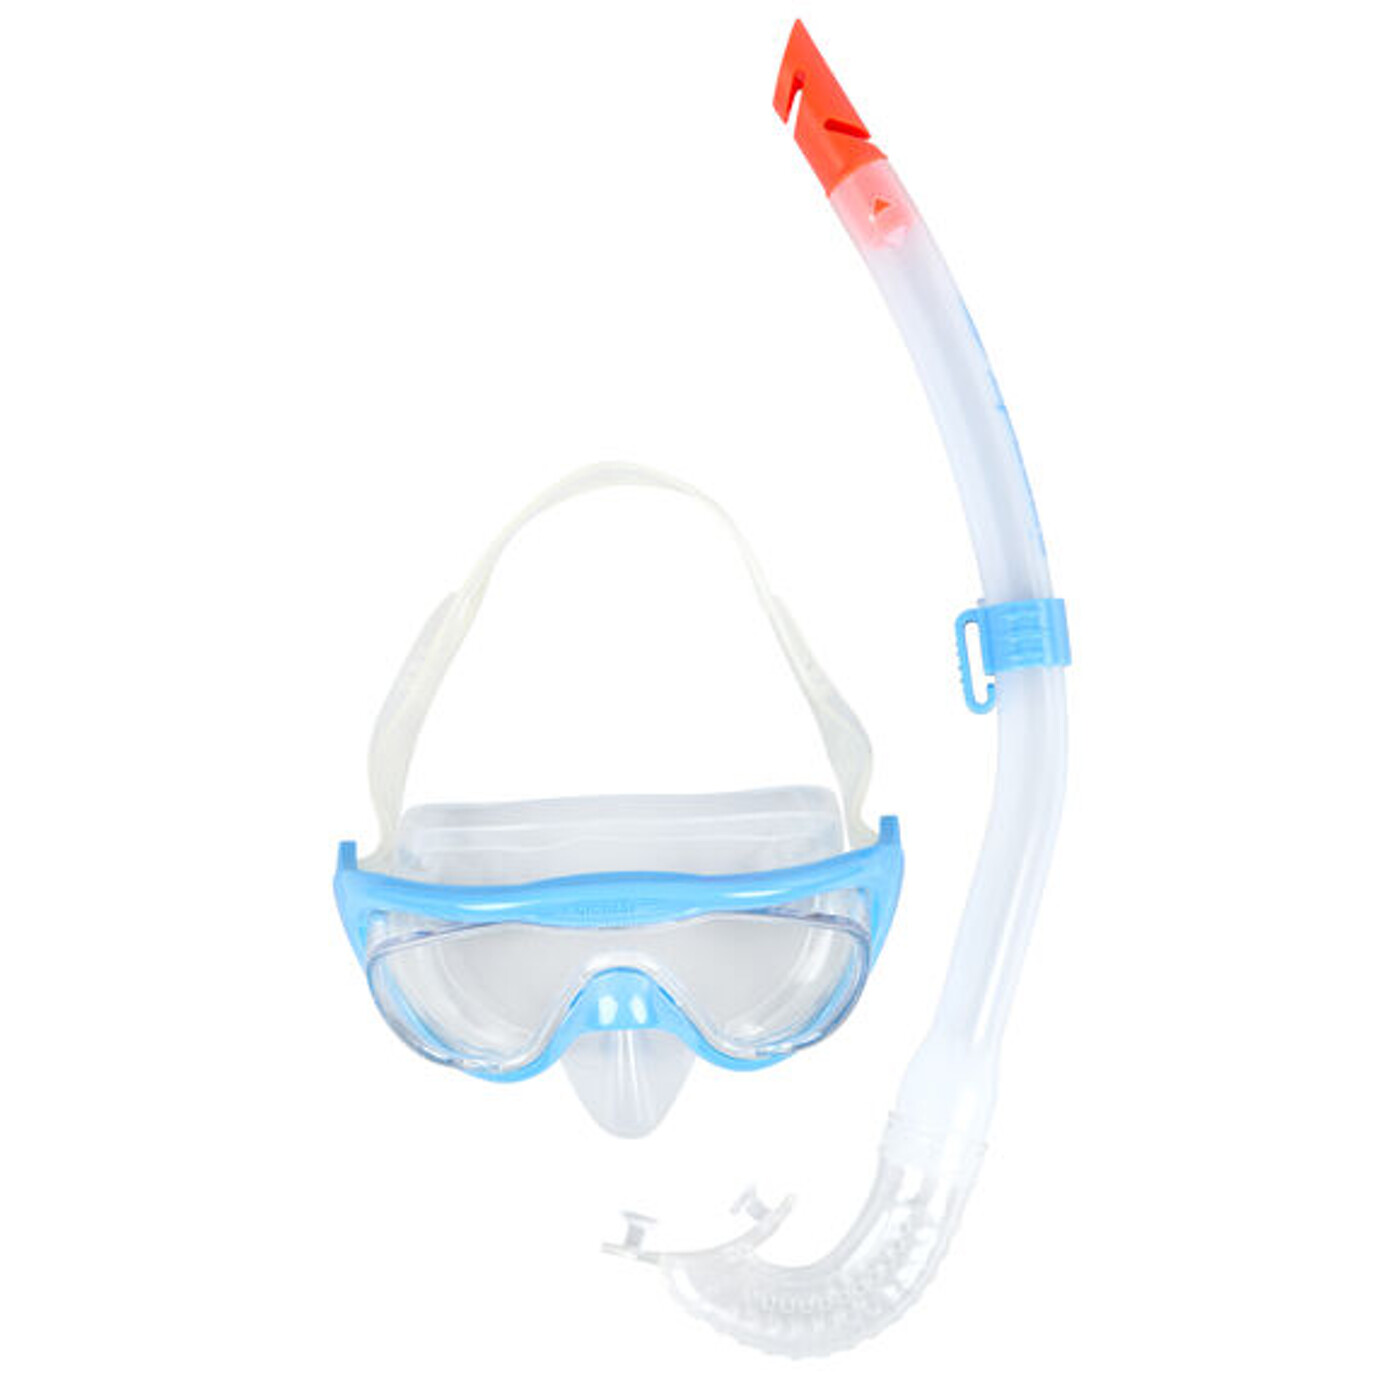 SPEEDO Kinder Glide Schnorchel Set